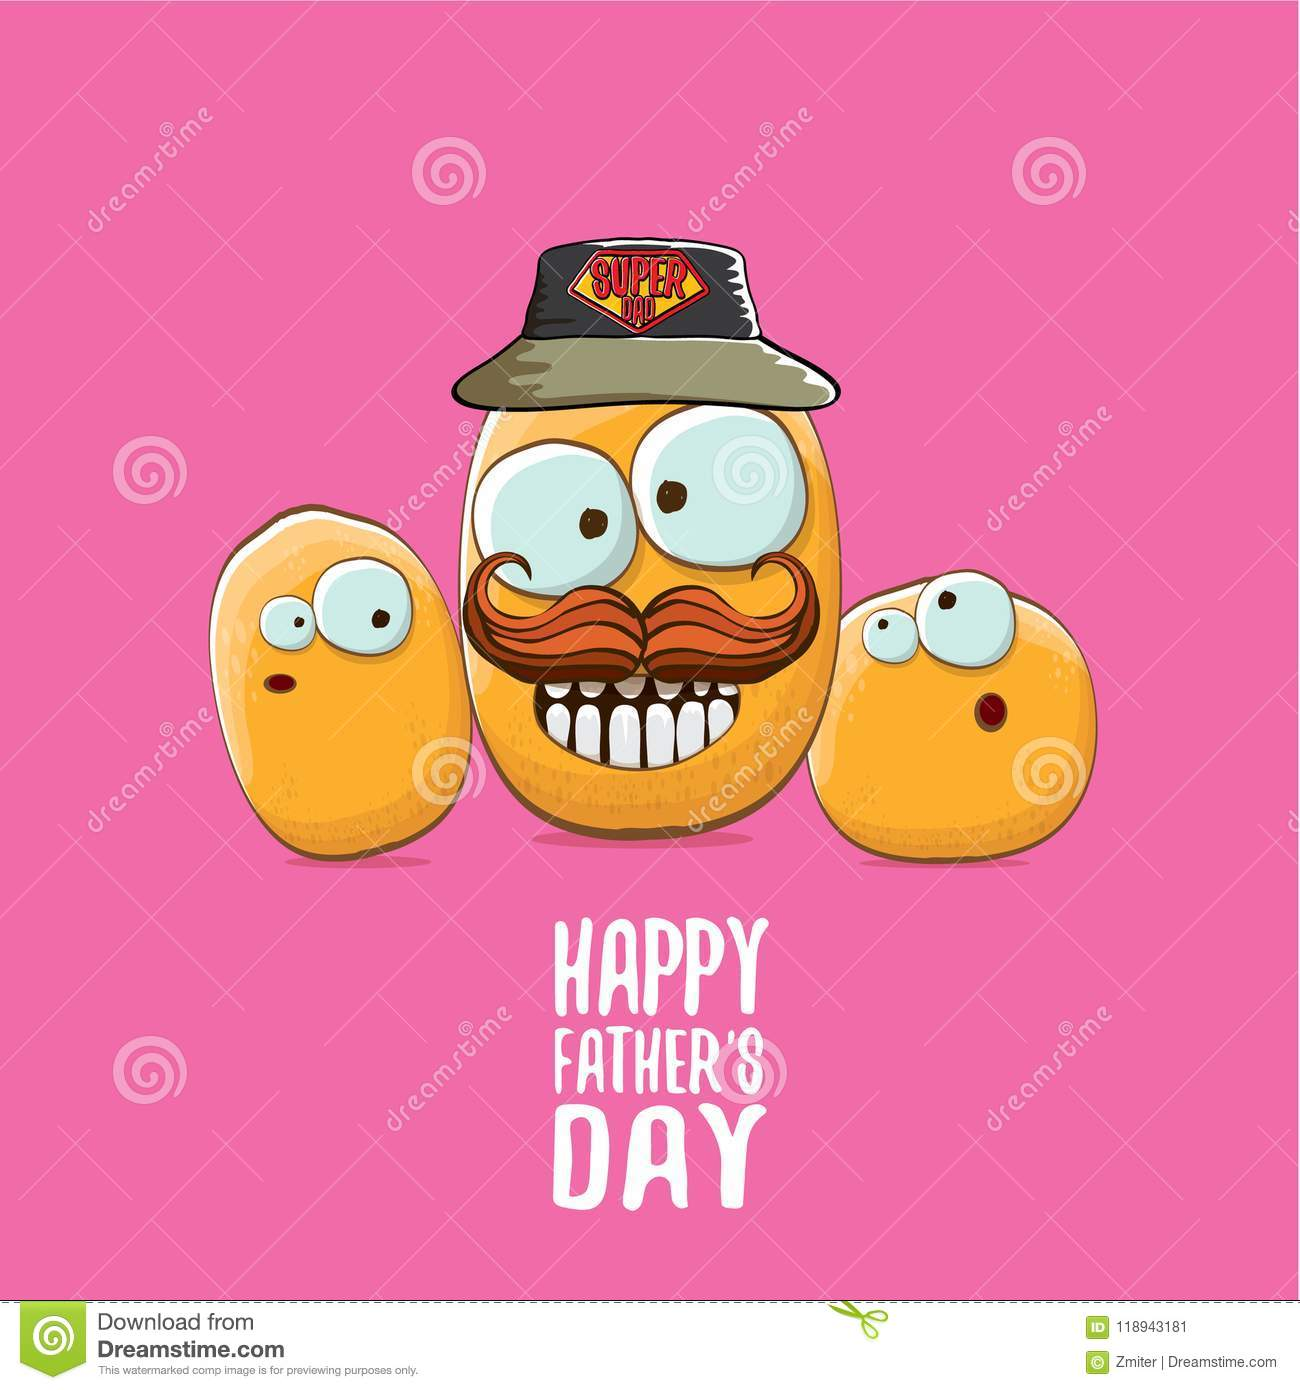 Happy Fathers Day Greeting Card With Cartoon Father Potato And Kids